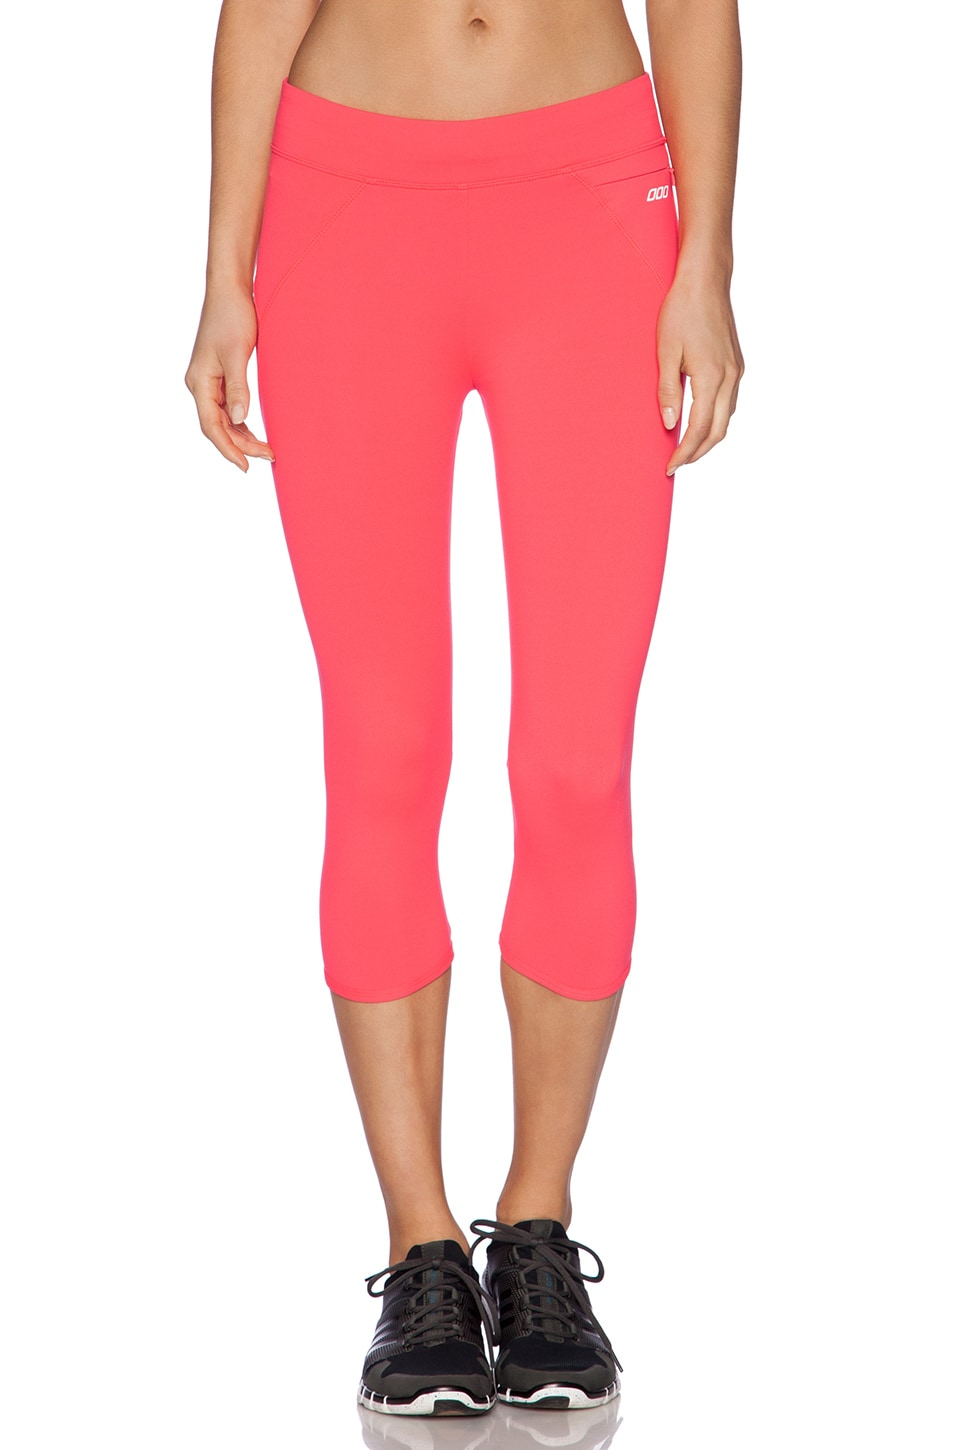 Lorna Jane Amy 3/4 Legging in Cupid Red